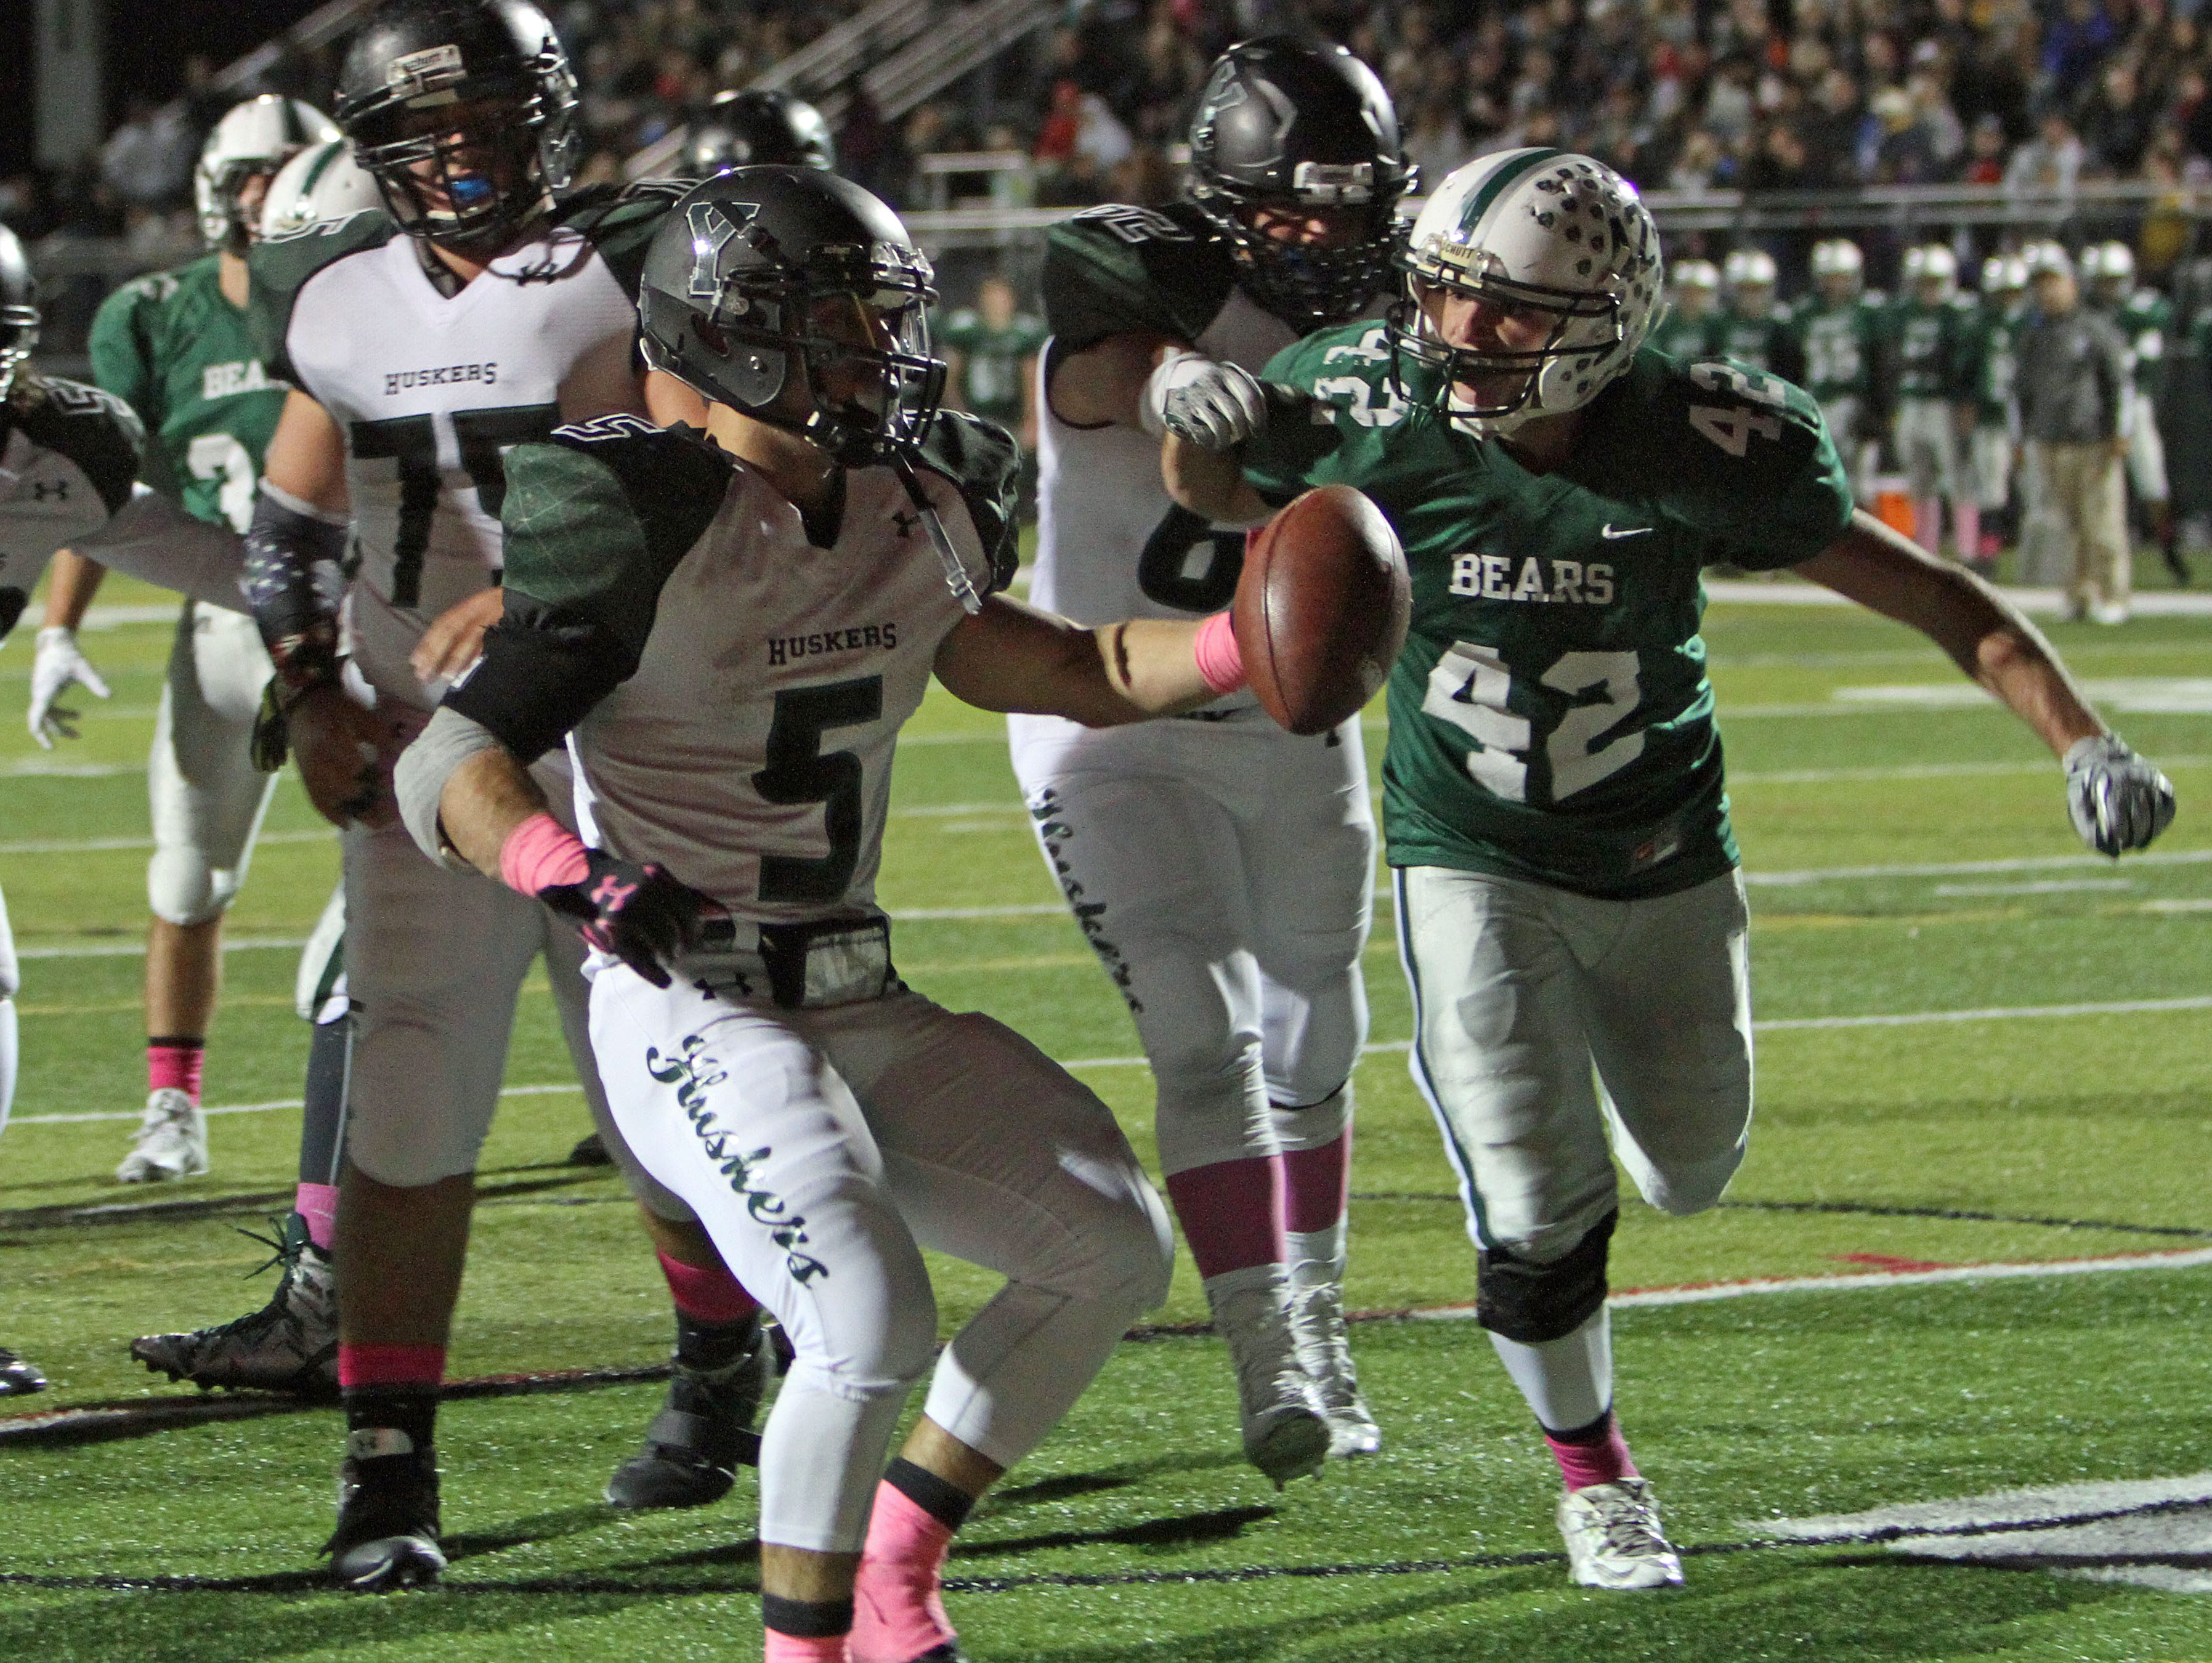 Yorktown's Nicholas Santaviccia (5) fruns in for a first half touchdown in front of Brewsters Kevin Blank (42) during a football playoff game at Brewster High School Oct. 23, 2015.